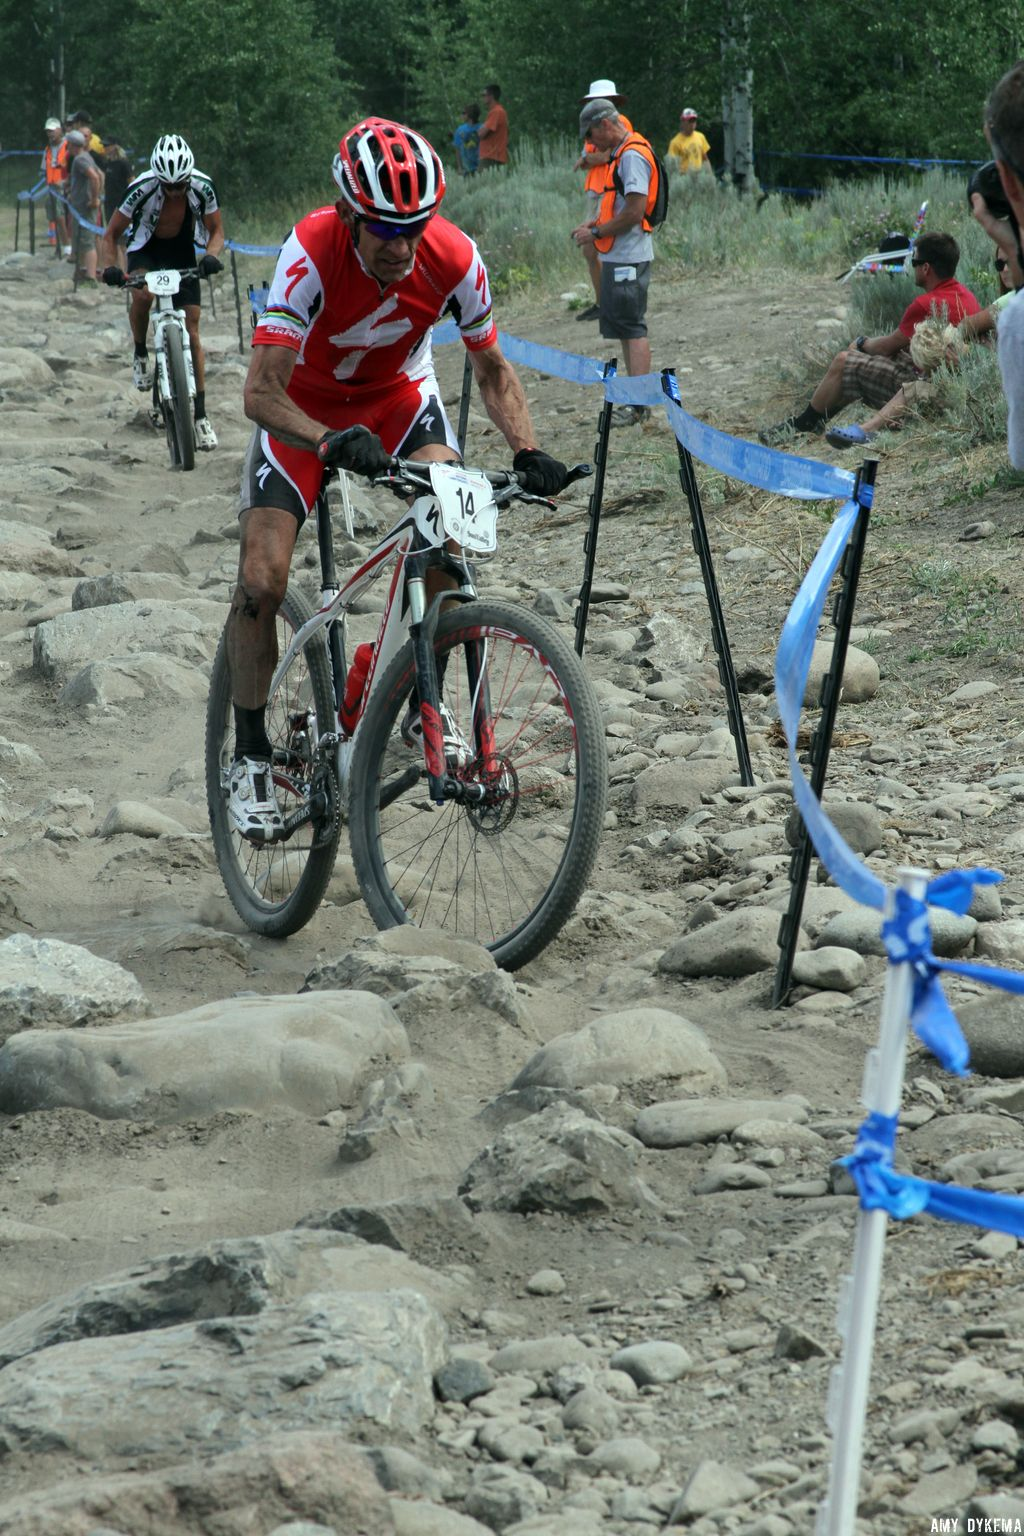 Ned Overend uses his top-notch handling skills to fly through the rock garden. ©Amy Dykema